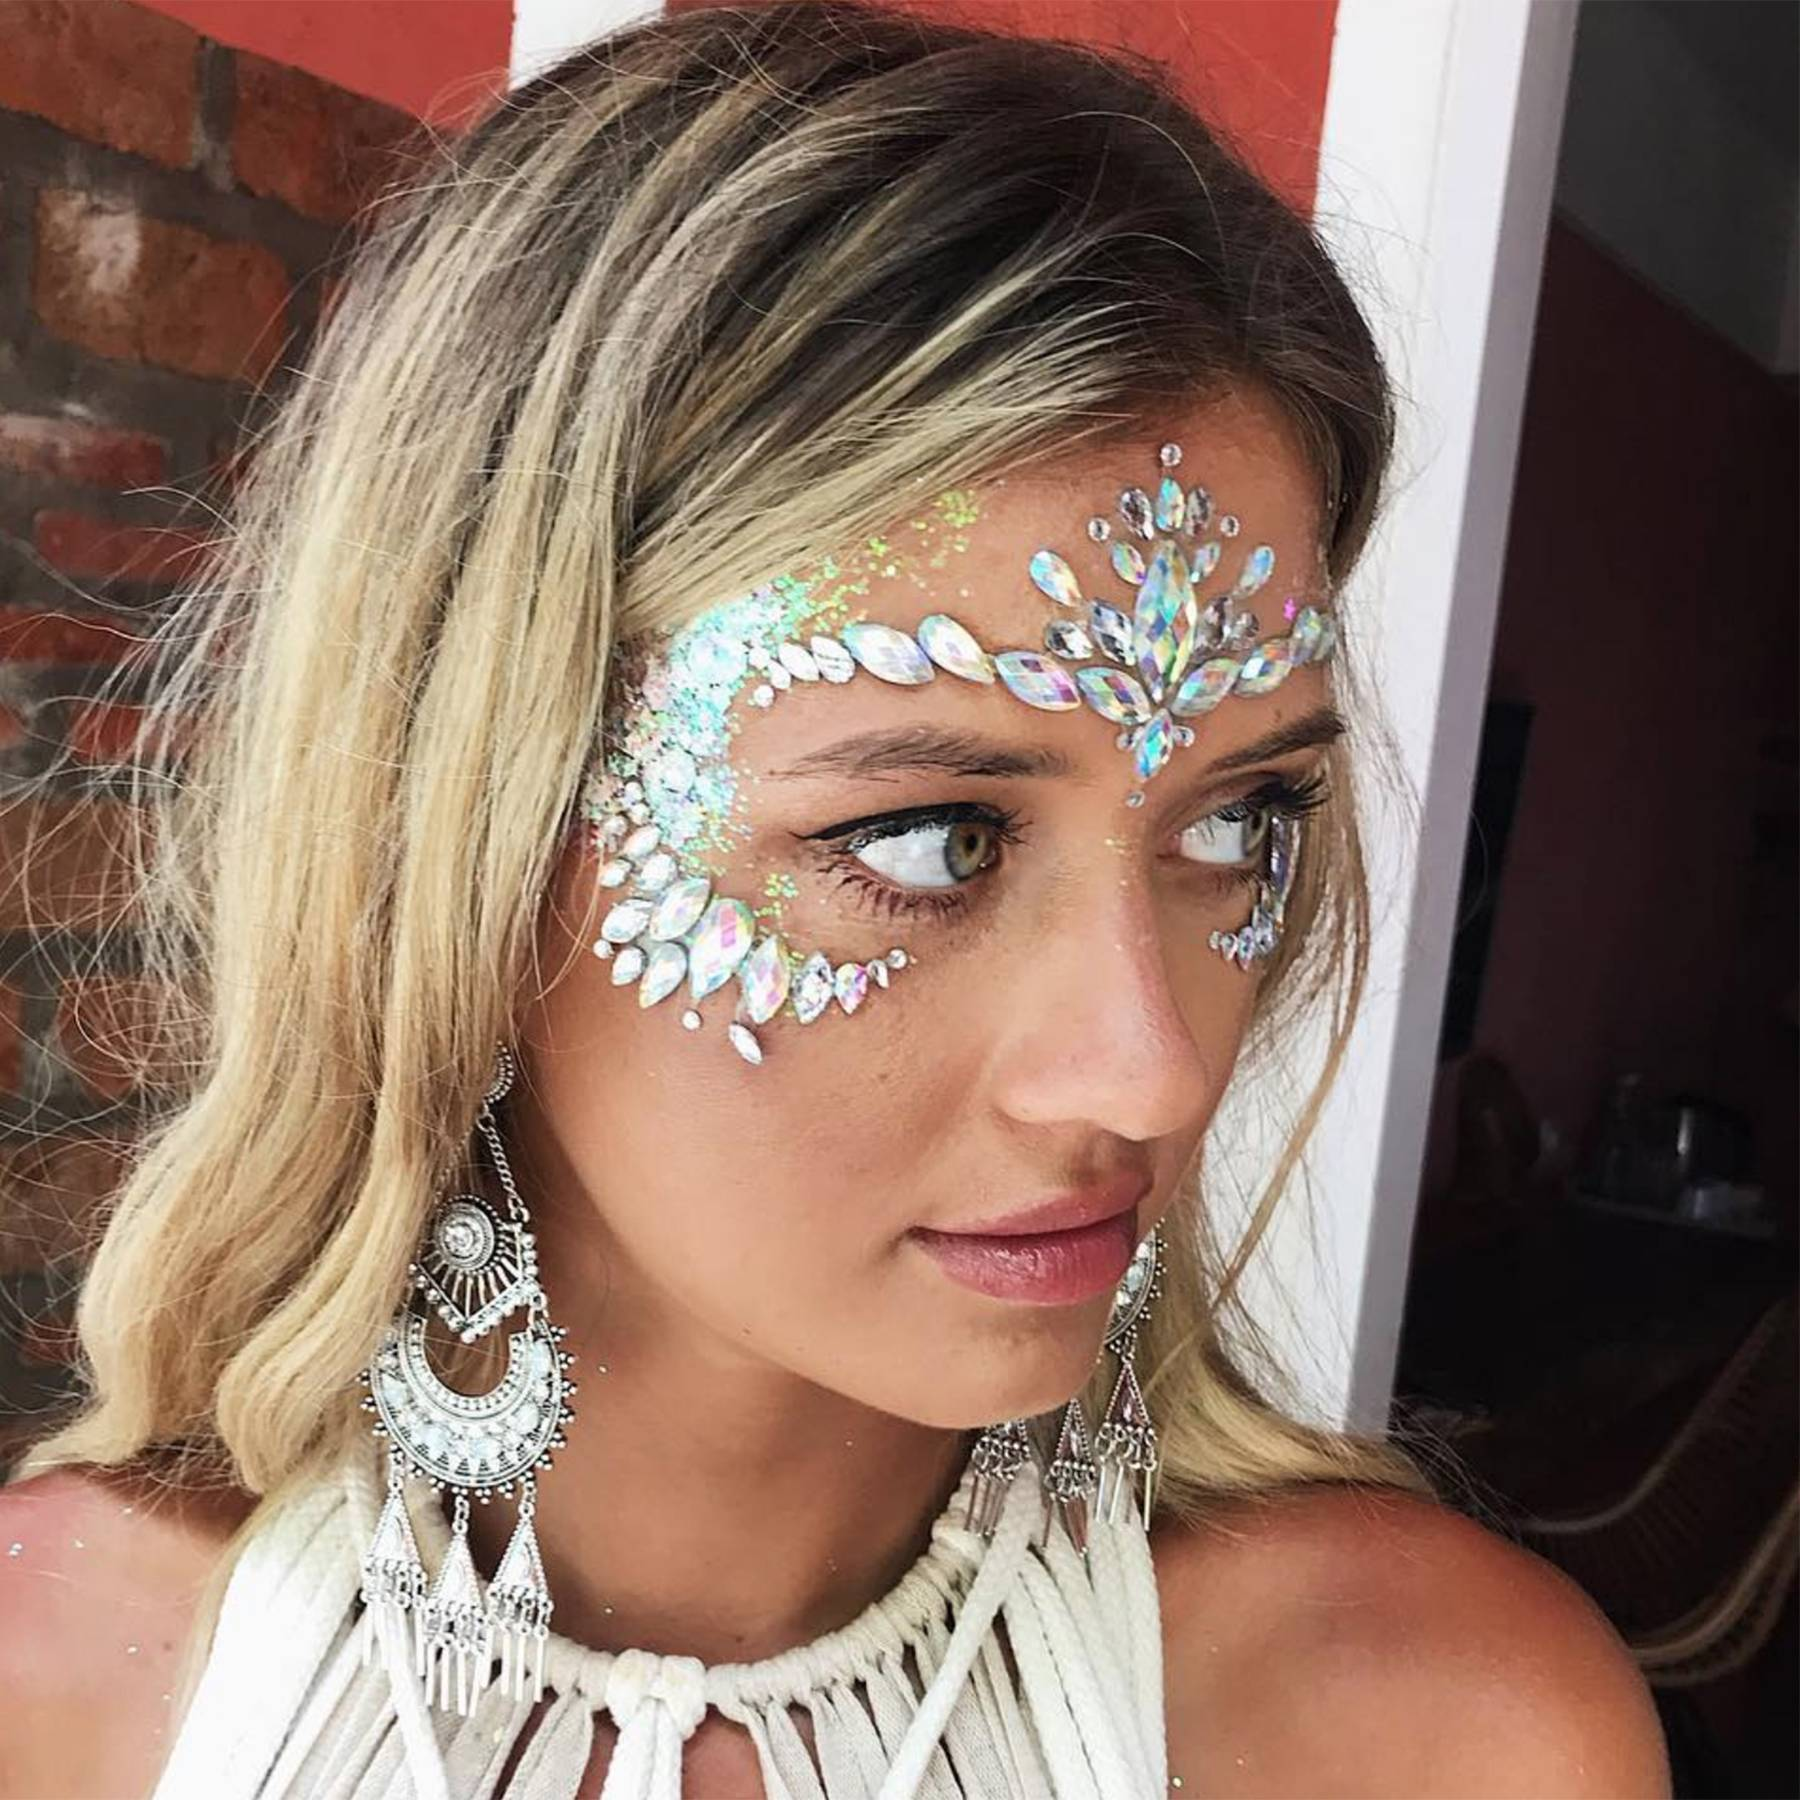 Festival Makeup Ideas 2019: From Glittery To Understated Cool | Glamour UK